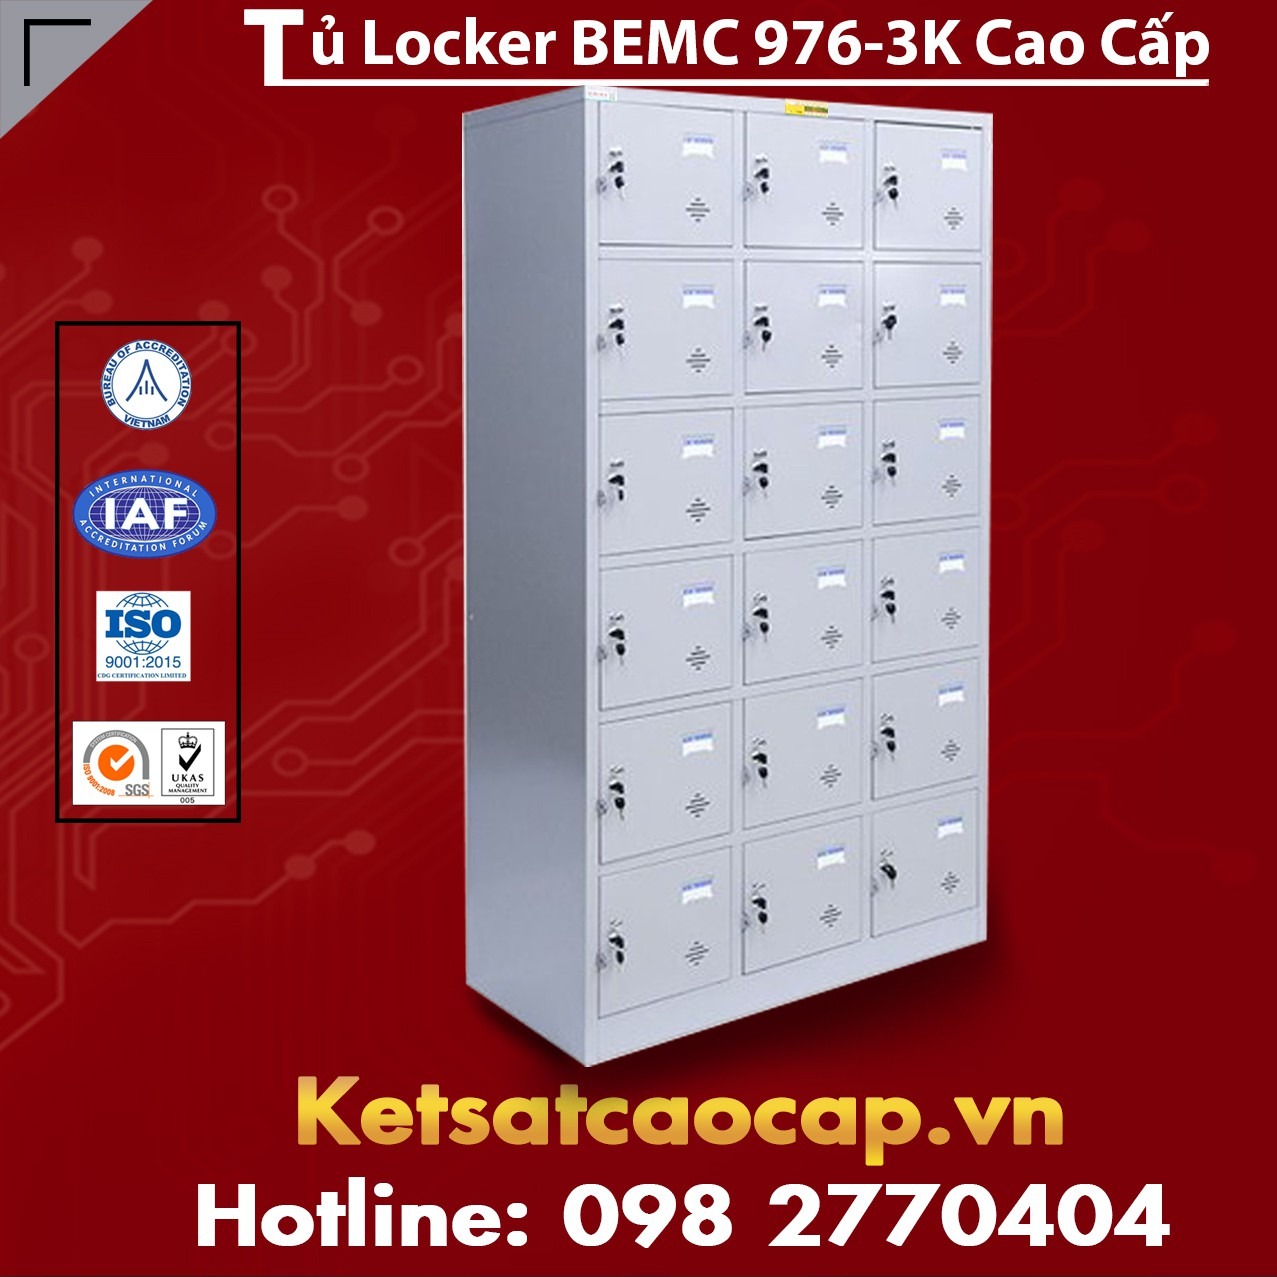 Tủ Locker BEMC 976-3K